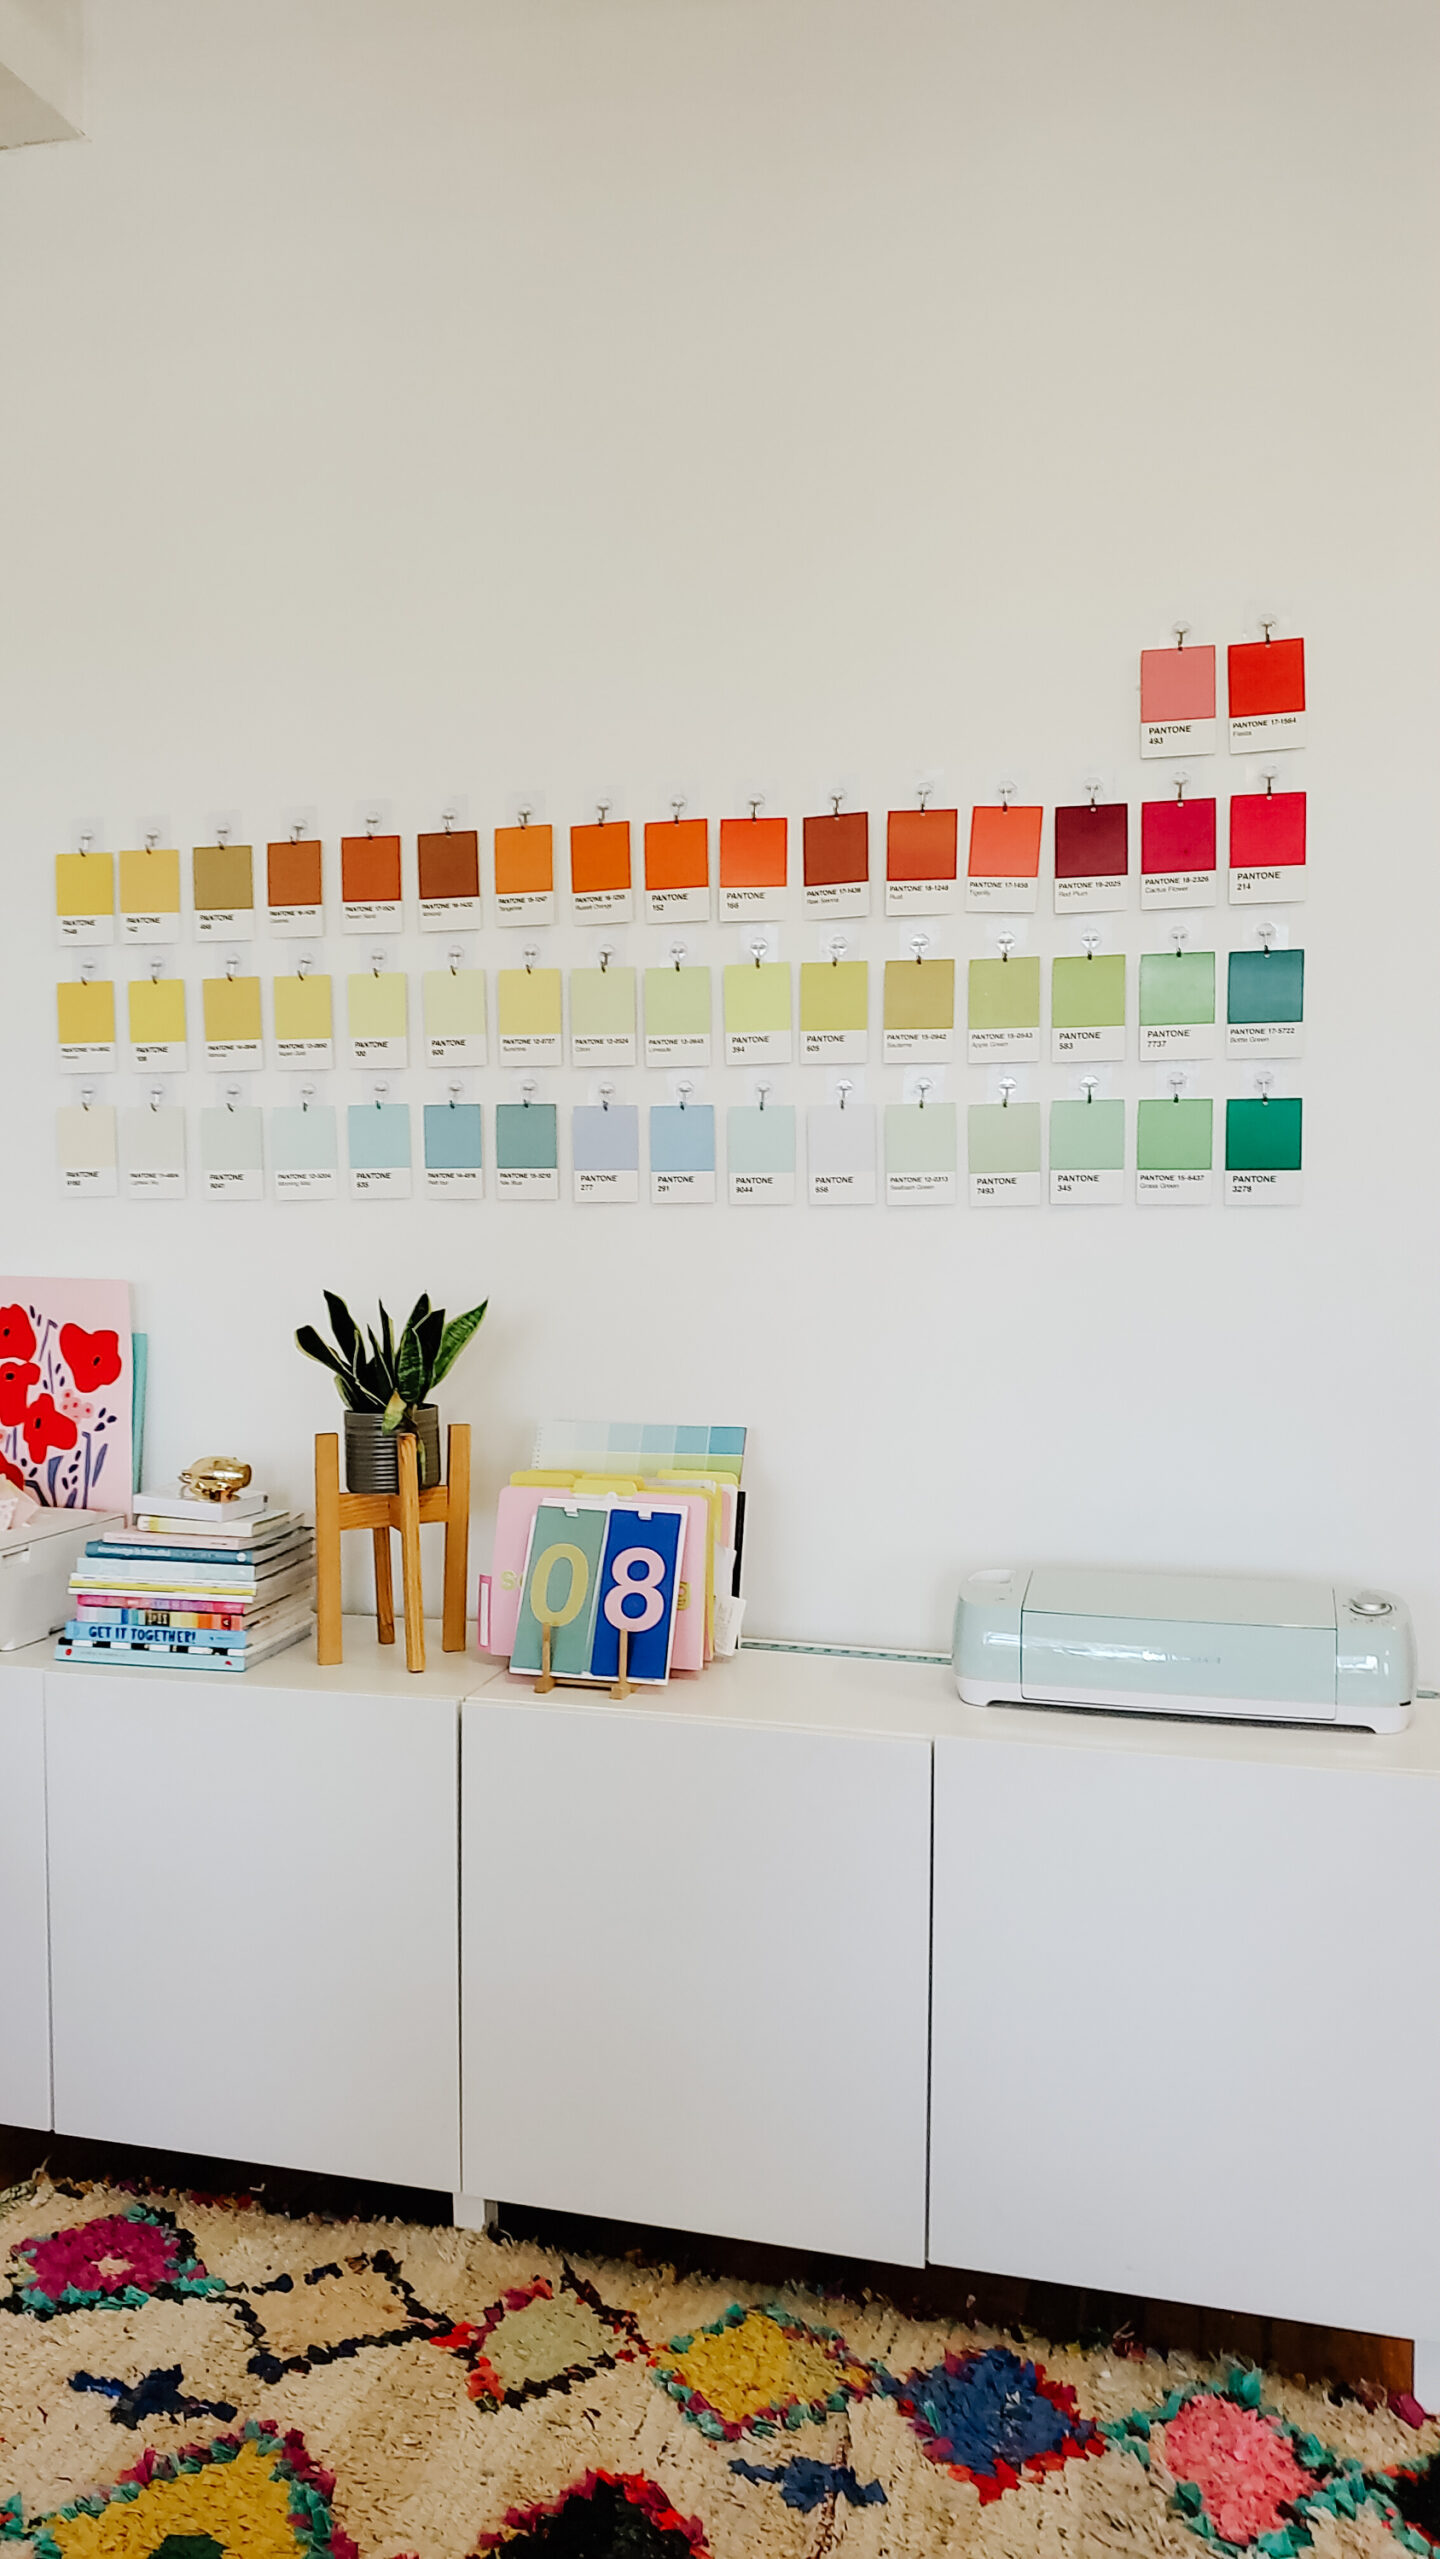 Pantone Wall decor idea